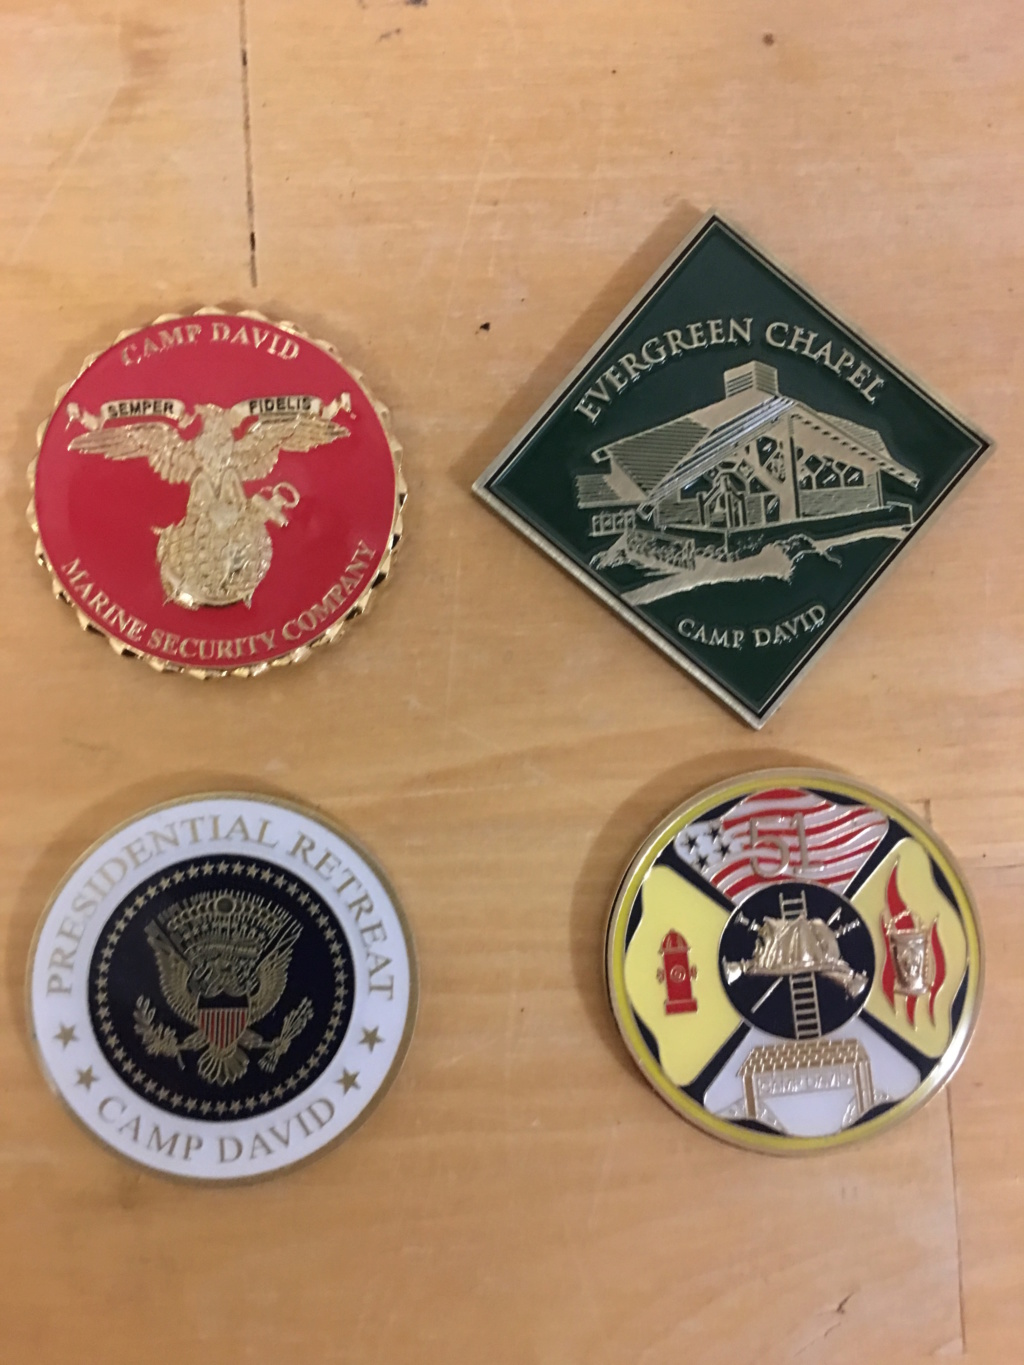 Camp David Challenge Coins Img_2919